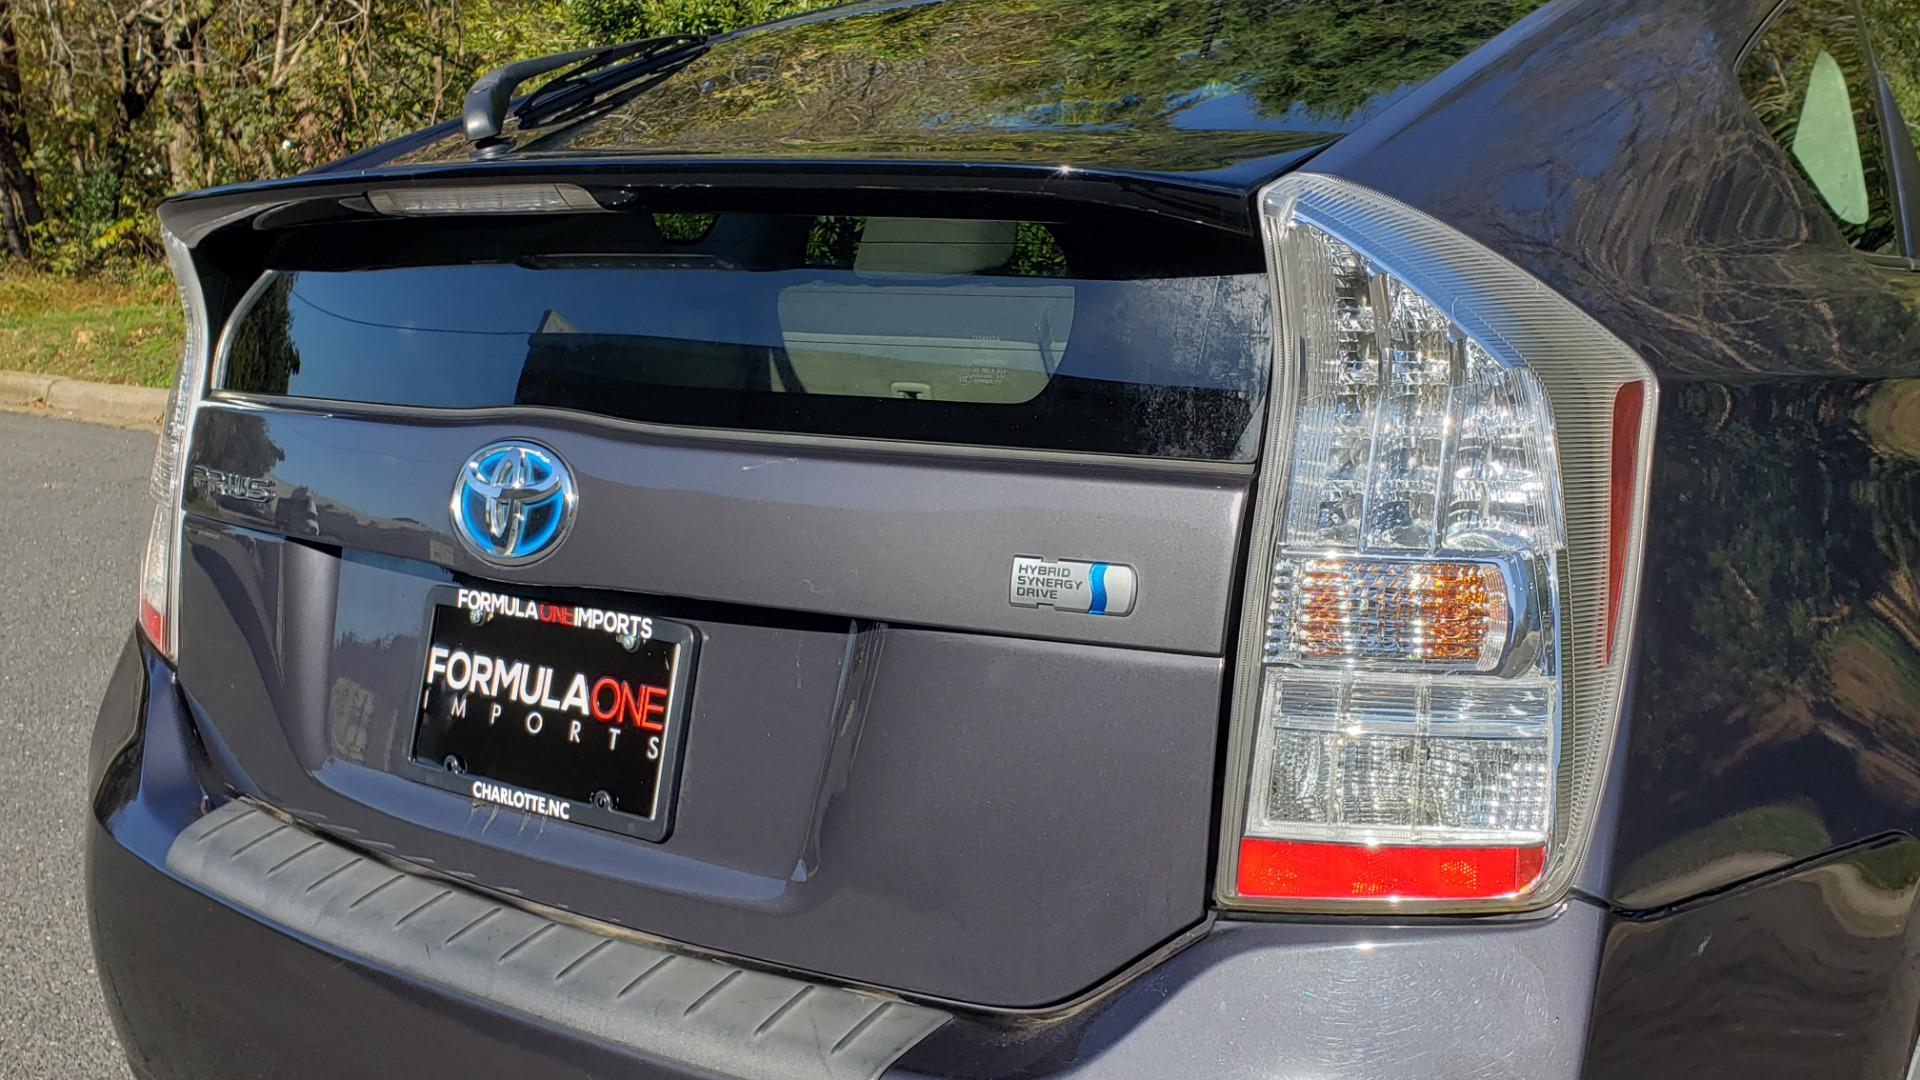 Used 2011 Toyota PRIUS ONE / HYBRID / 5-DOOR / HATCHBACK / 50MPG for sale Sold at Formula Imports in Charlotte NC 28227 30